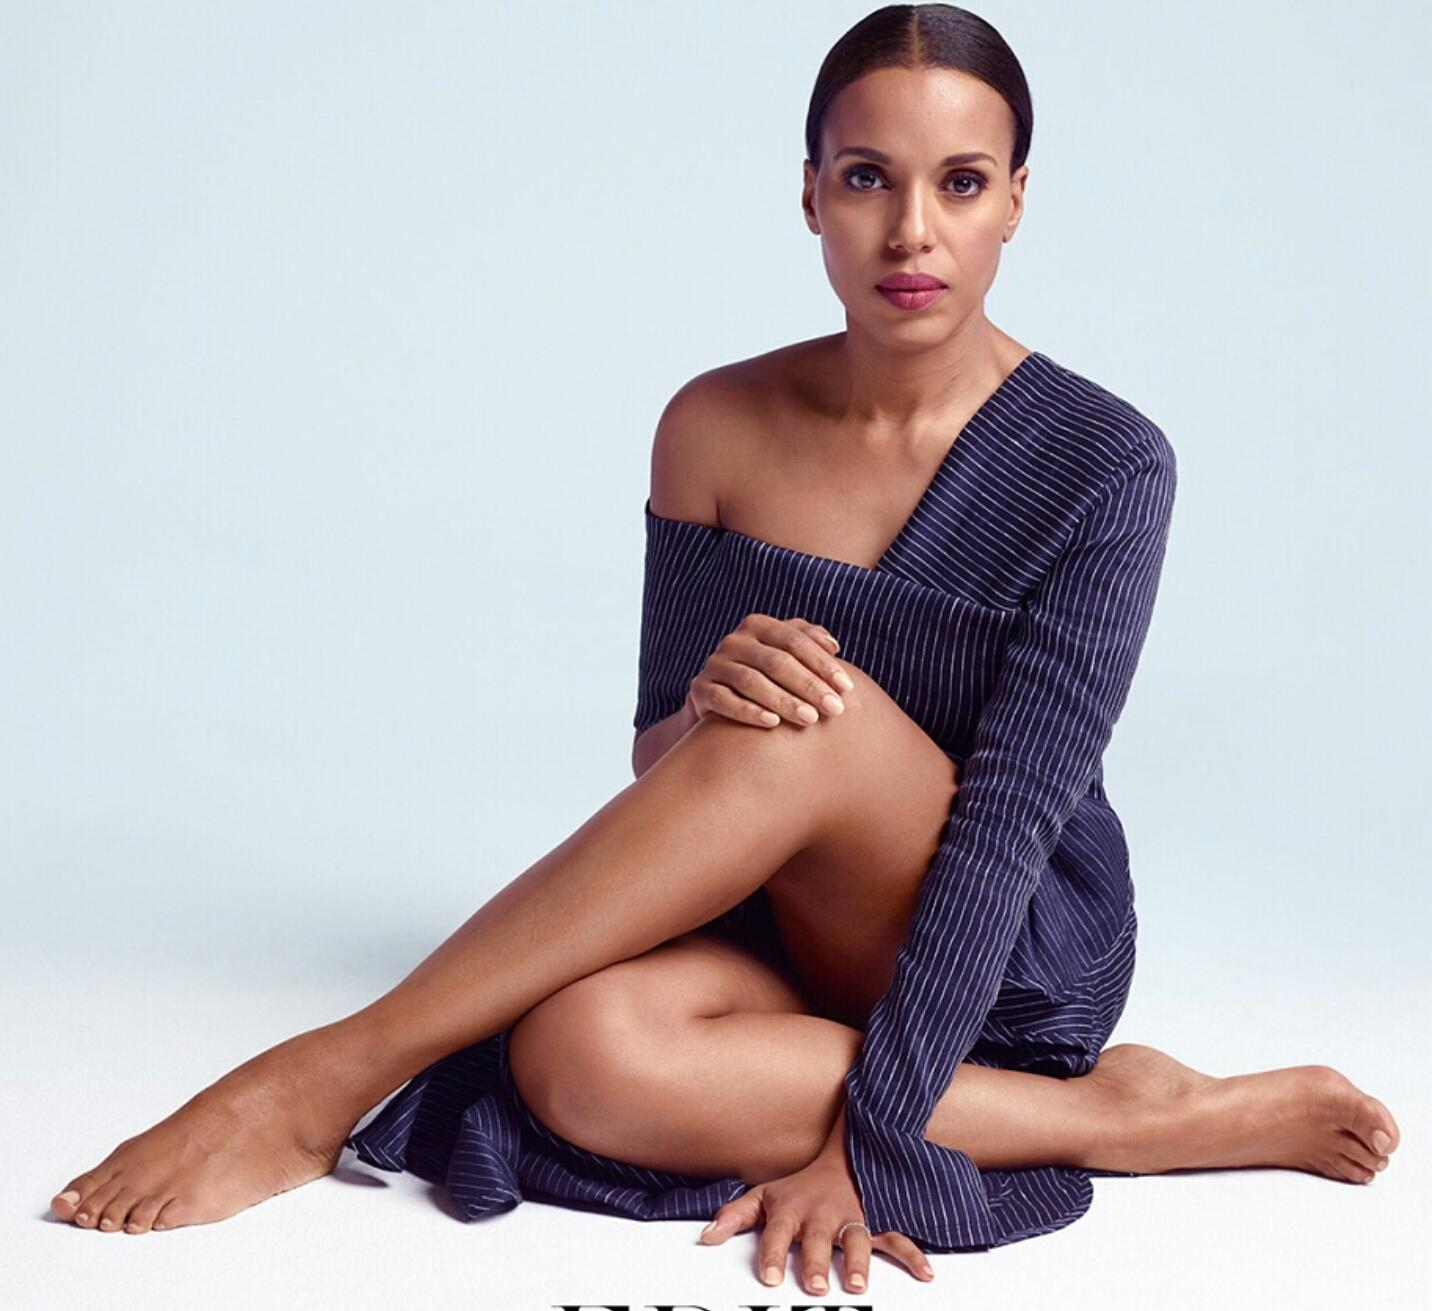 38 Hot Pictures Of Kerry Washington Are Delight For Fans